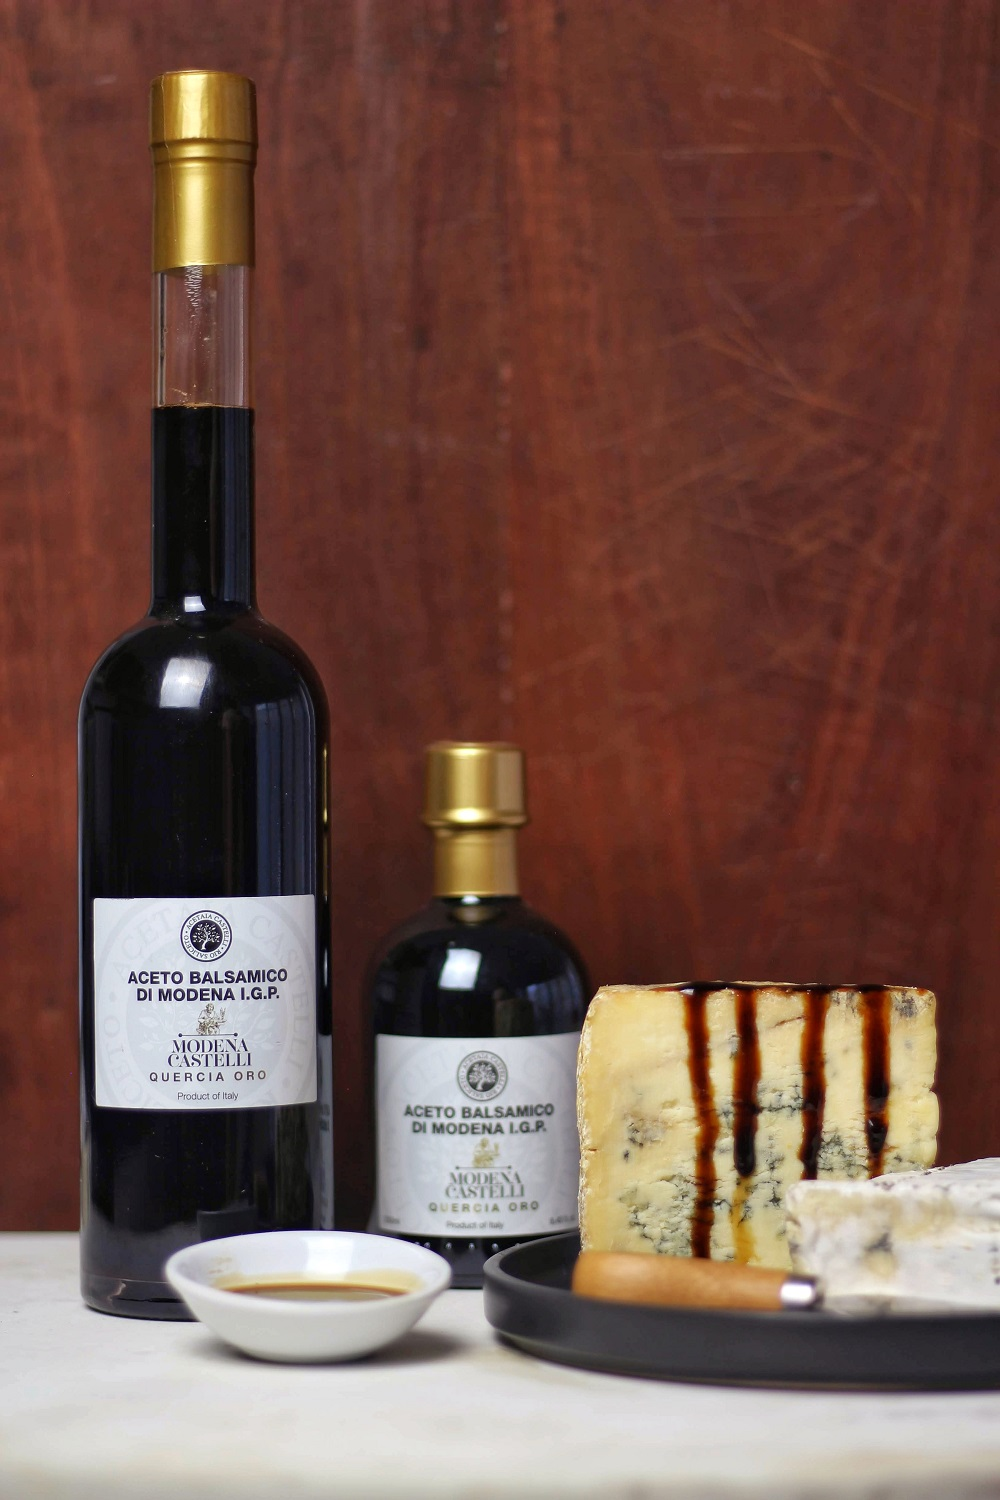 Aged IGP Balsamic - Gold